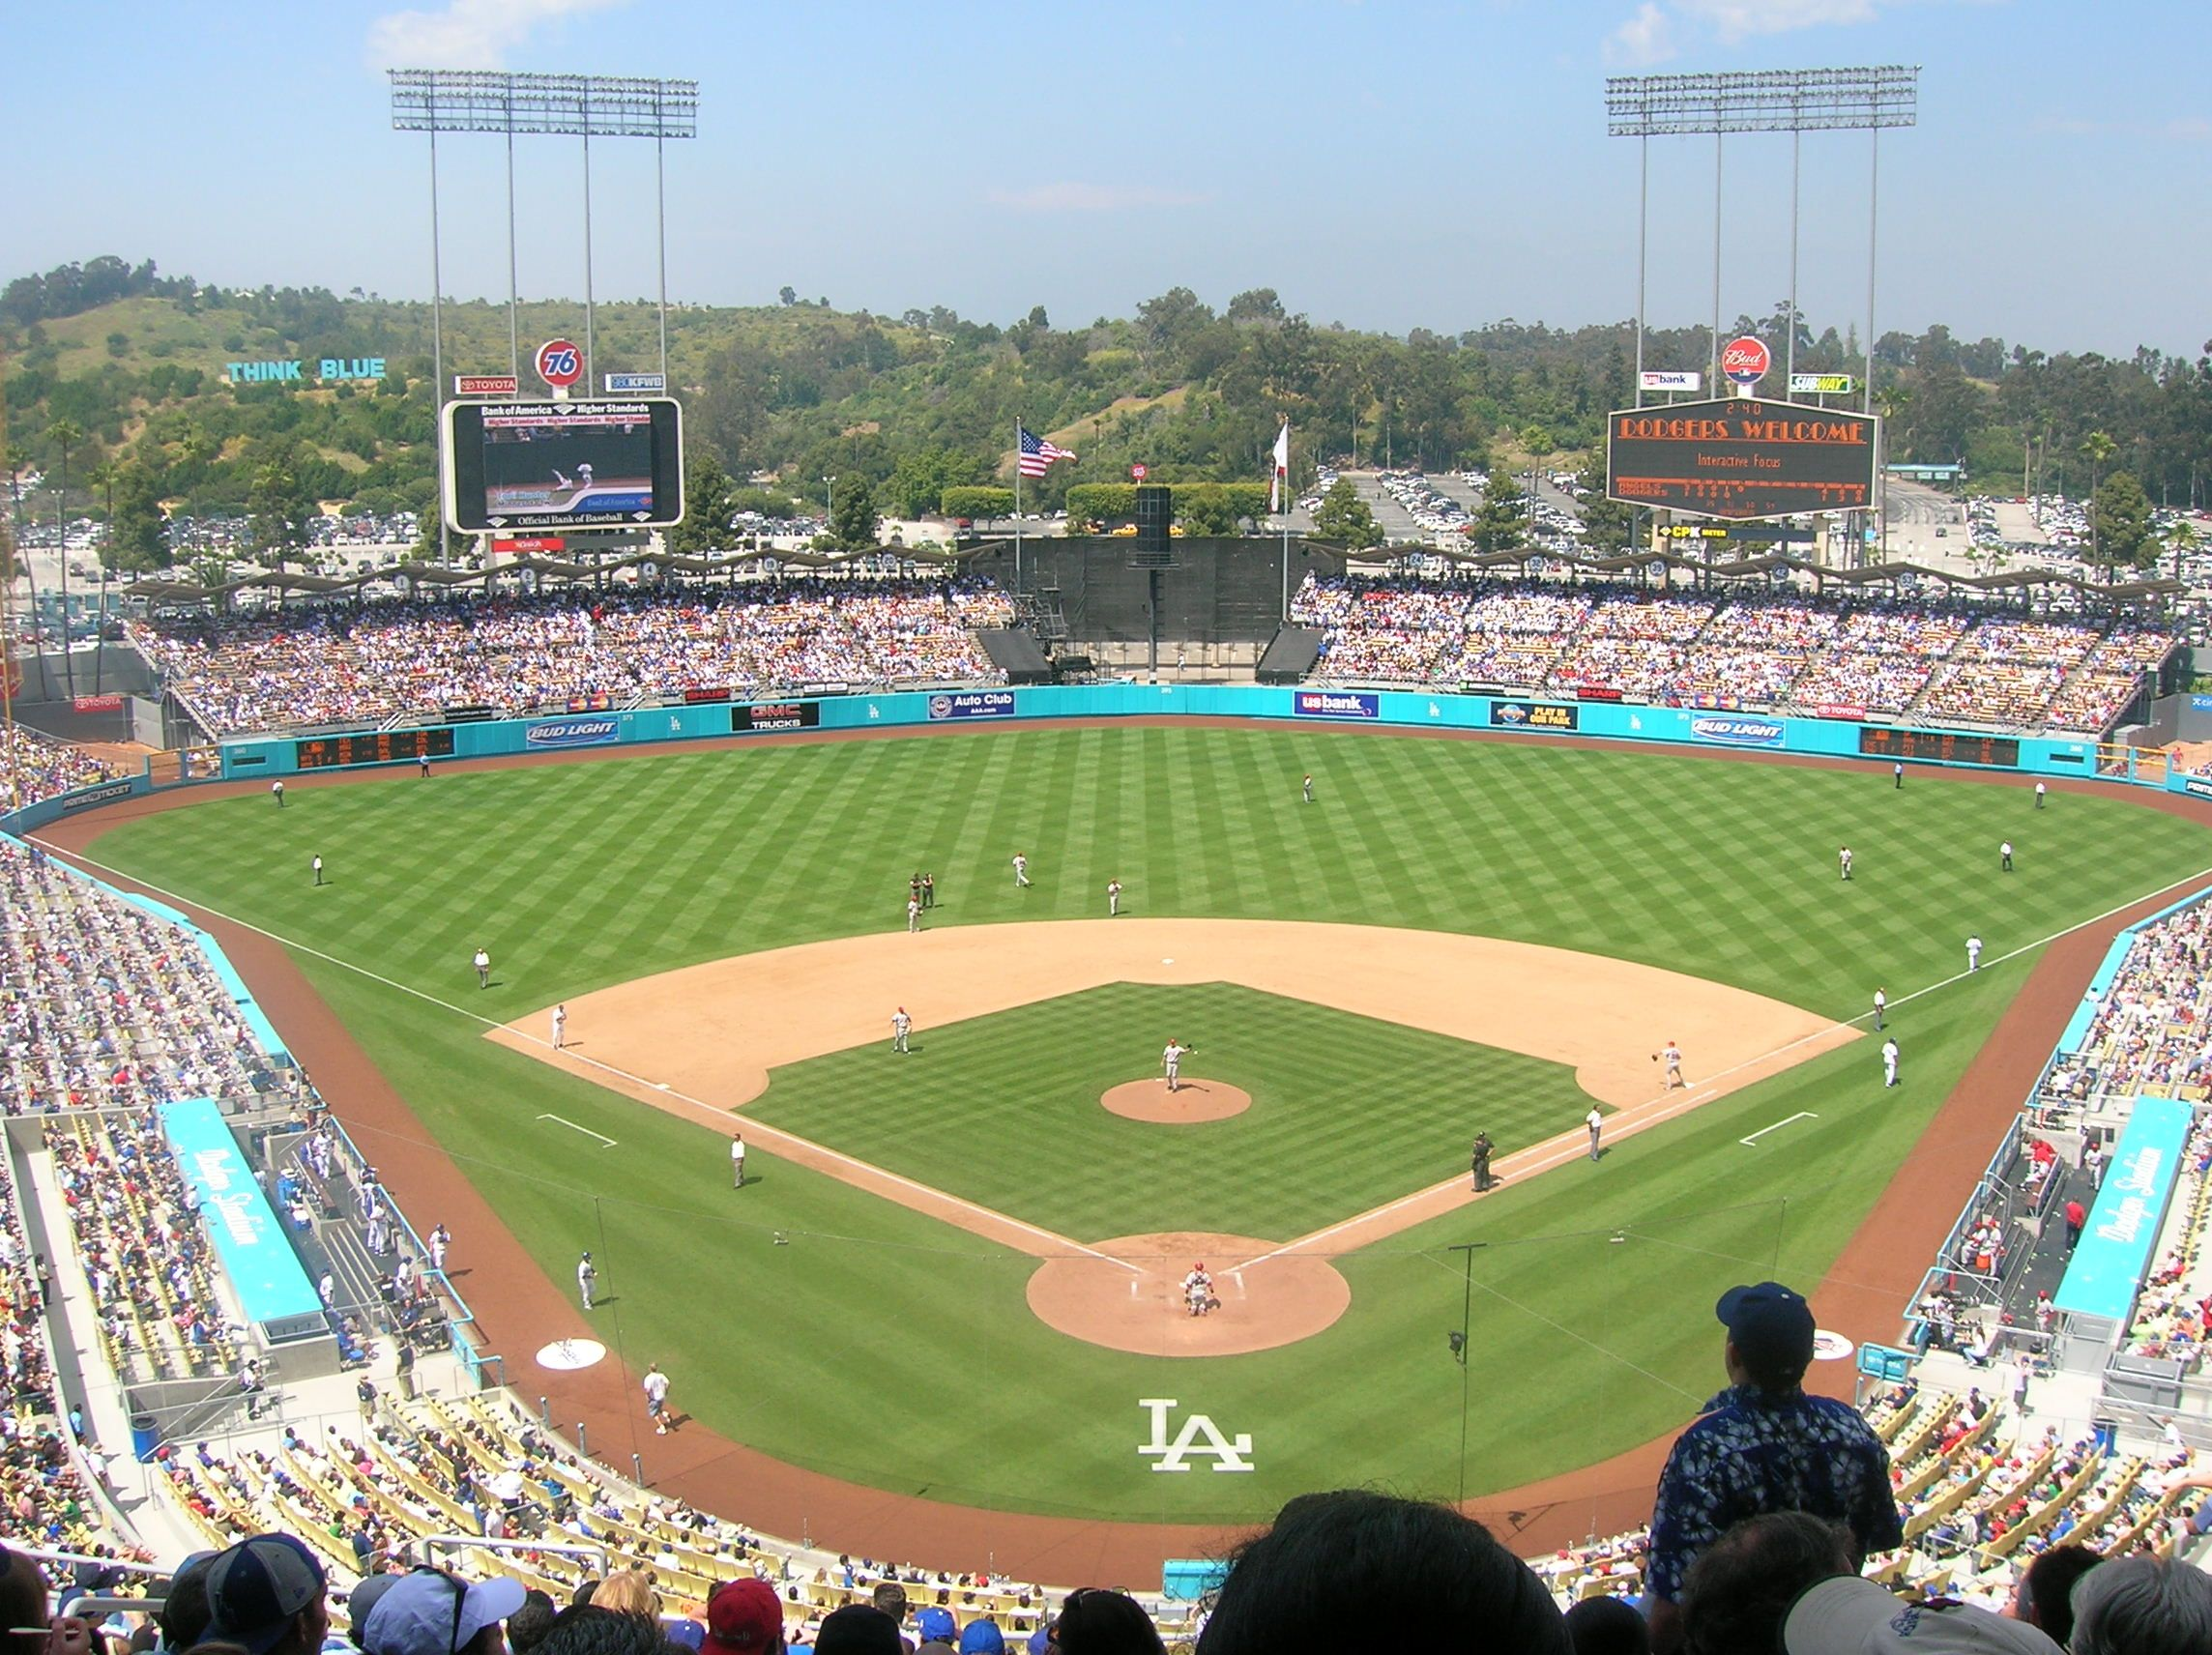 Today S Fields Of Dreams Report On The World On Wheels Focuses On A Team That Has Seen So Much I Major League Baseball Stadiums Baseball Stadium Dodger Stadium